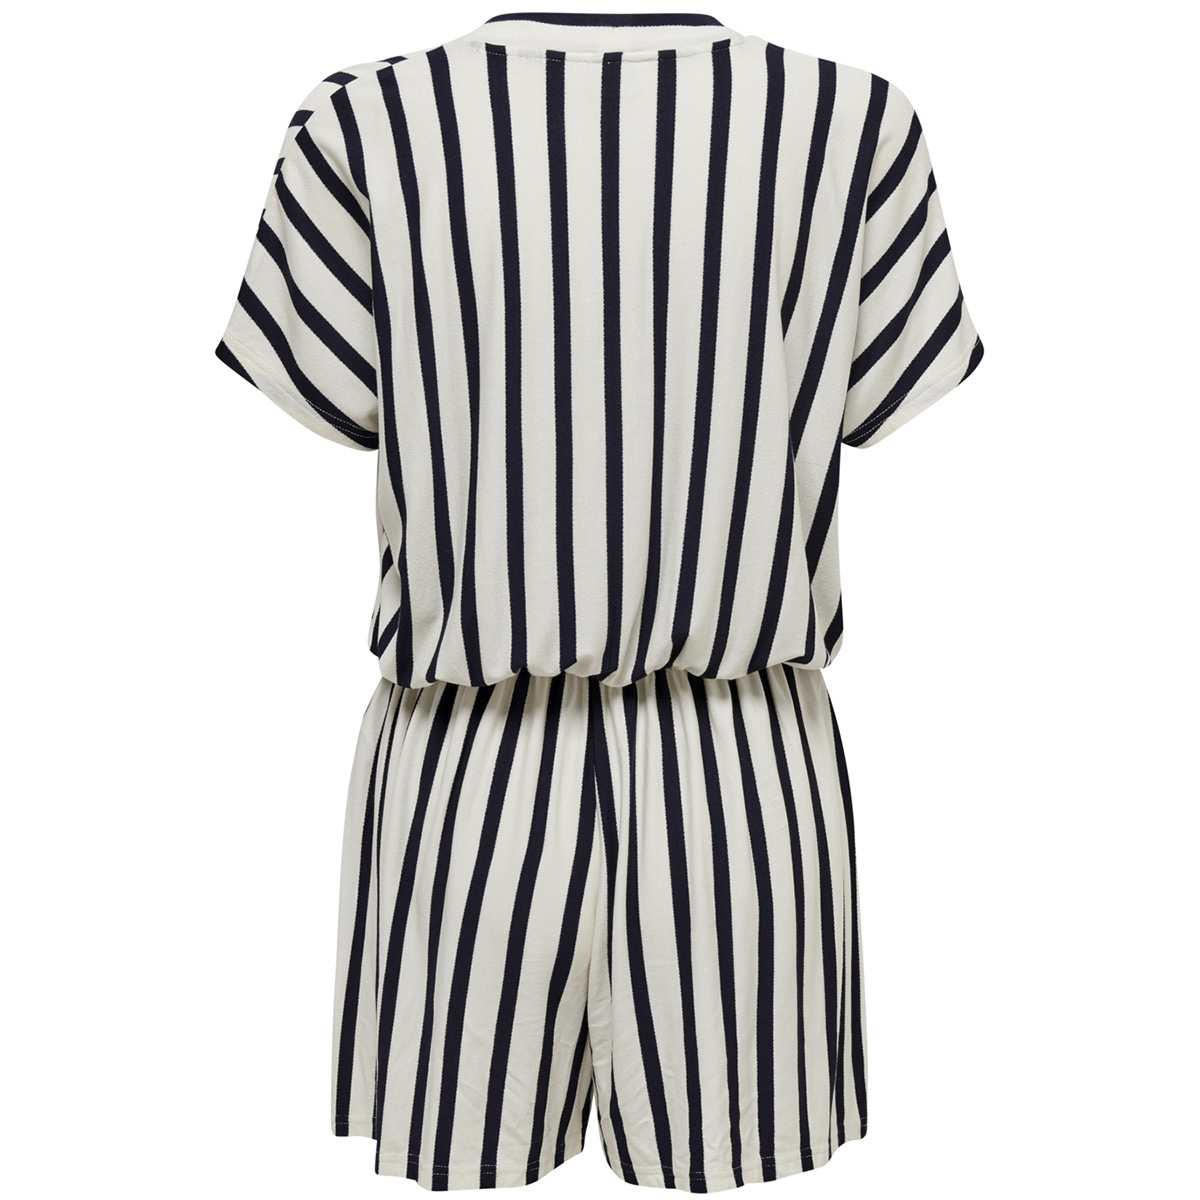 jdyalina s/s playsuit jrs 15183750 jacqueline de yong jumpsuit cloud dancer/navy blazer